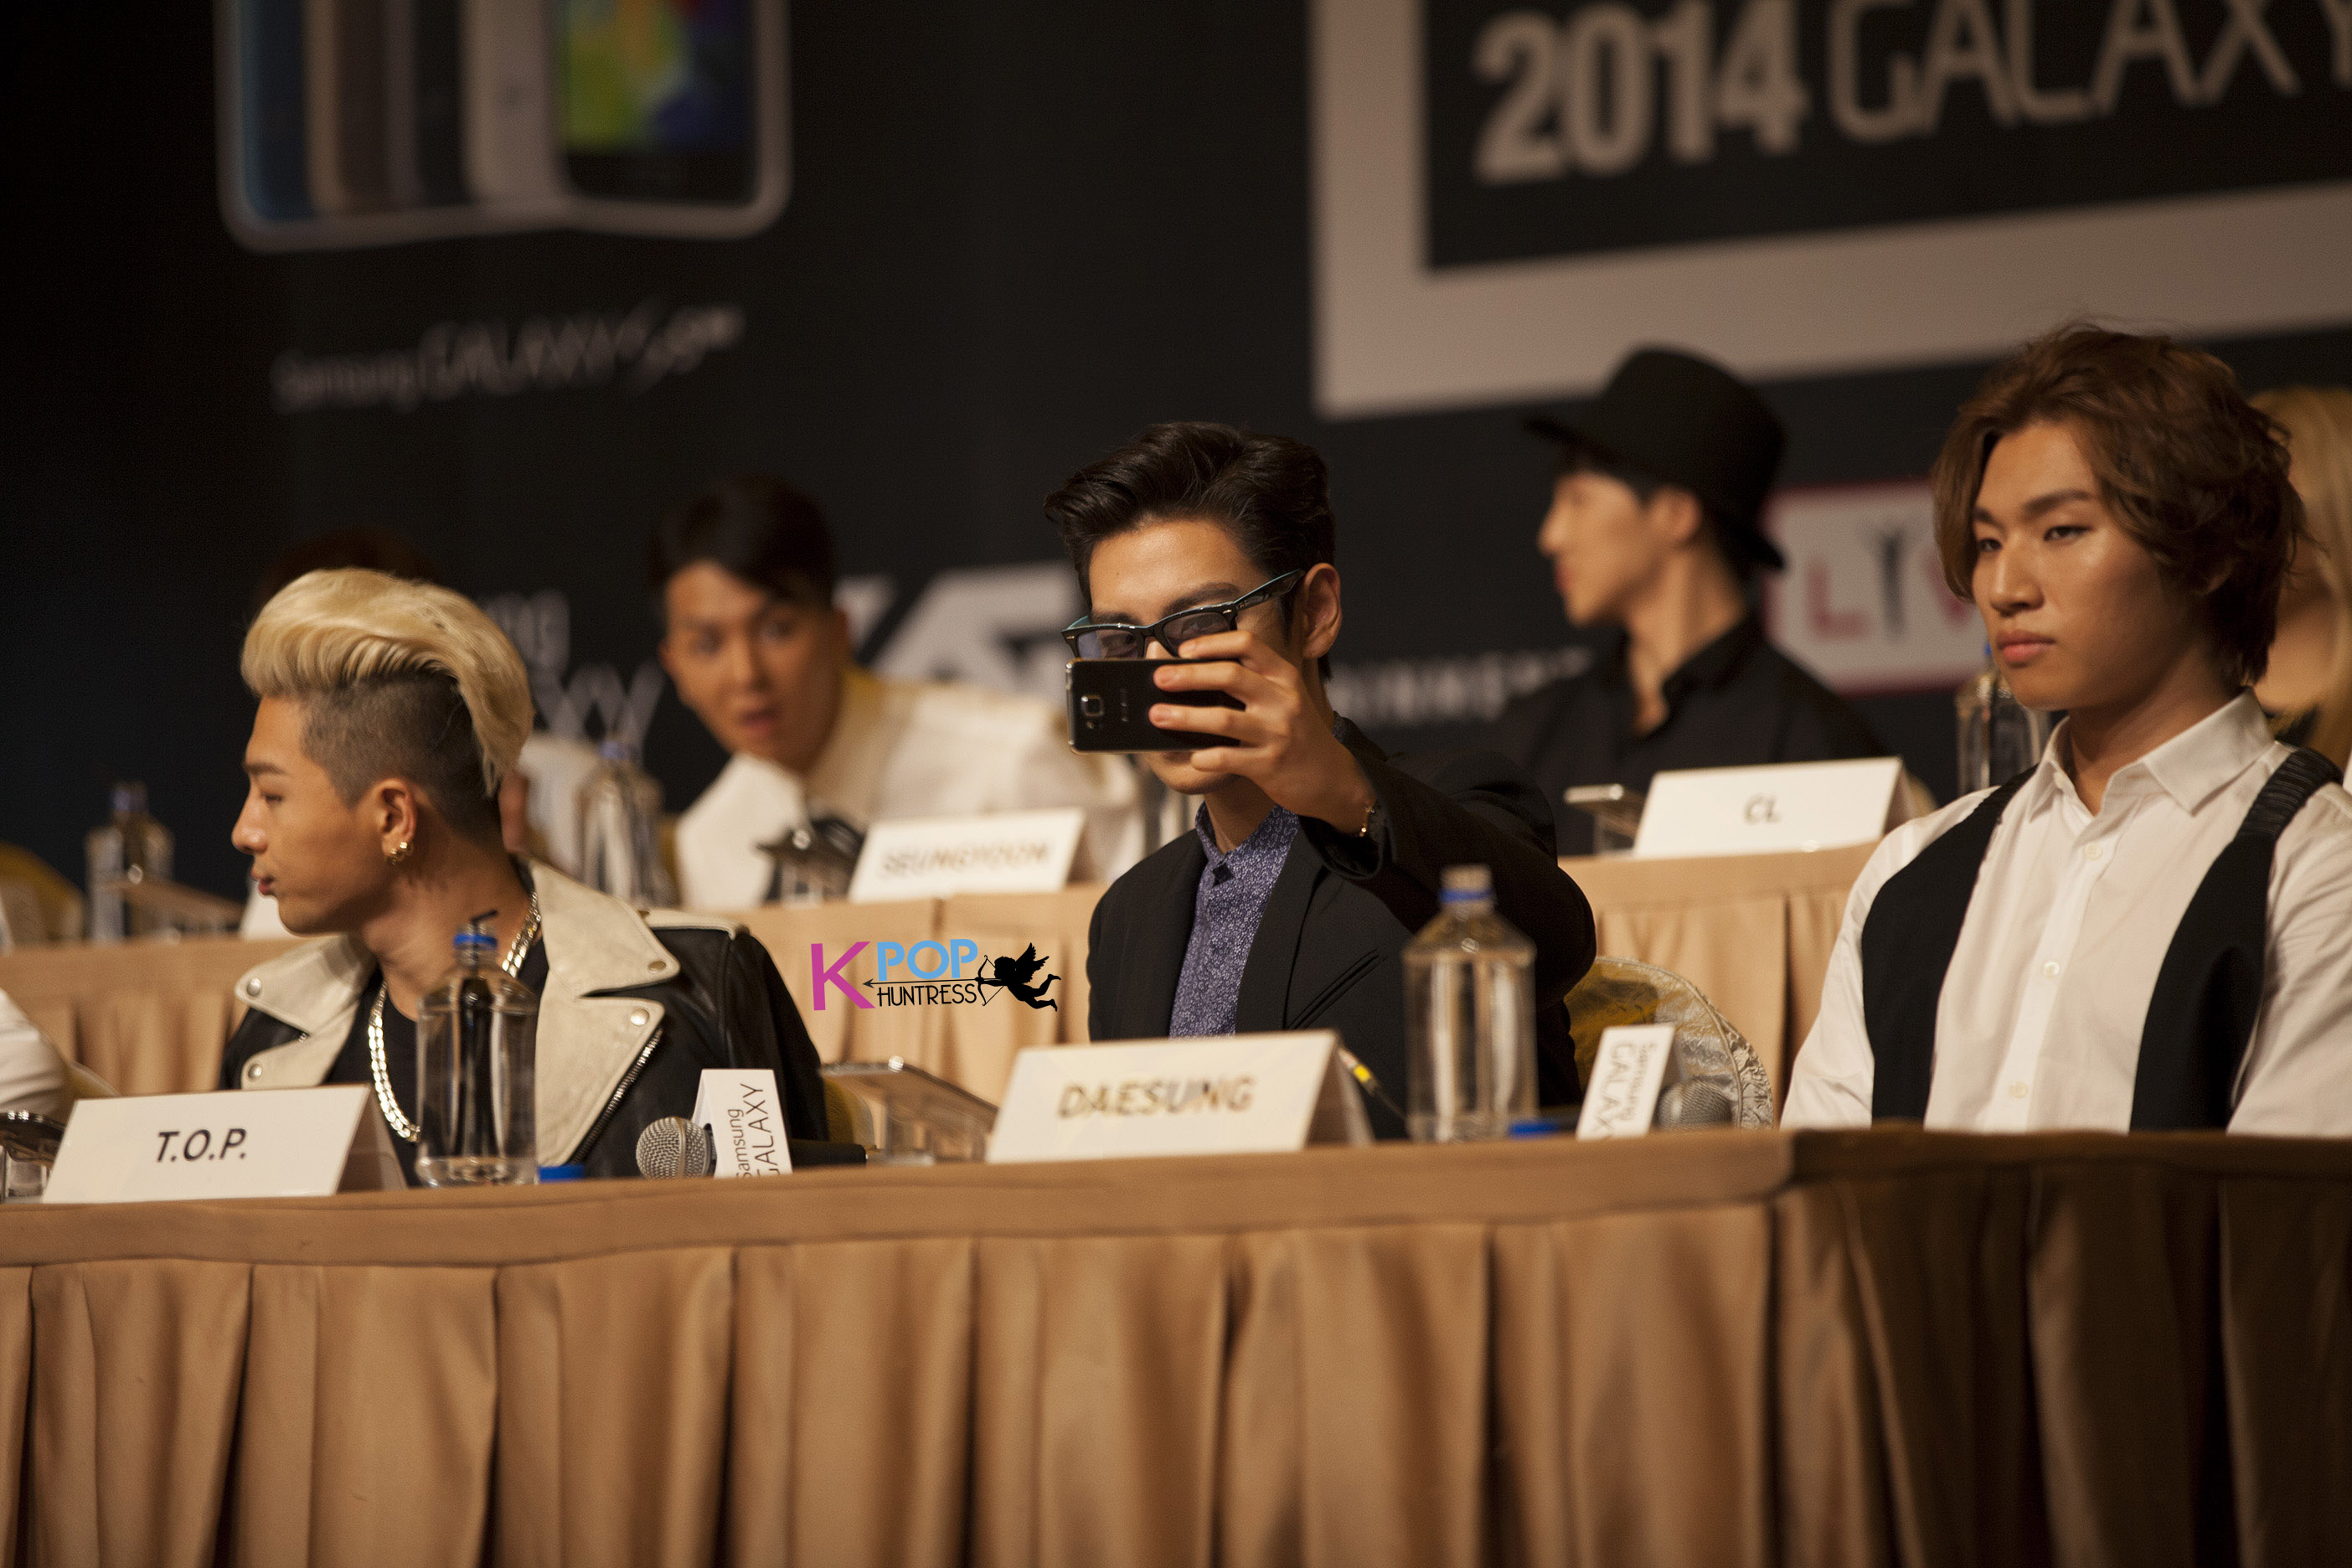 AT THE PRESS CONFERENCE OF THE YG FAMILY 2014 GALAXY TOUR ...